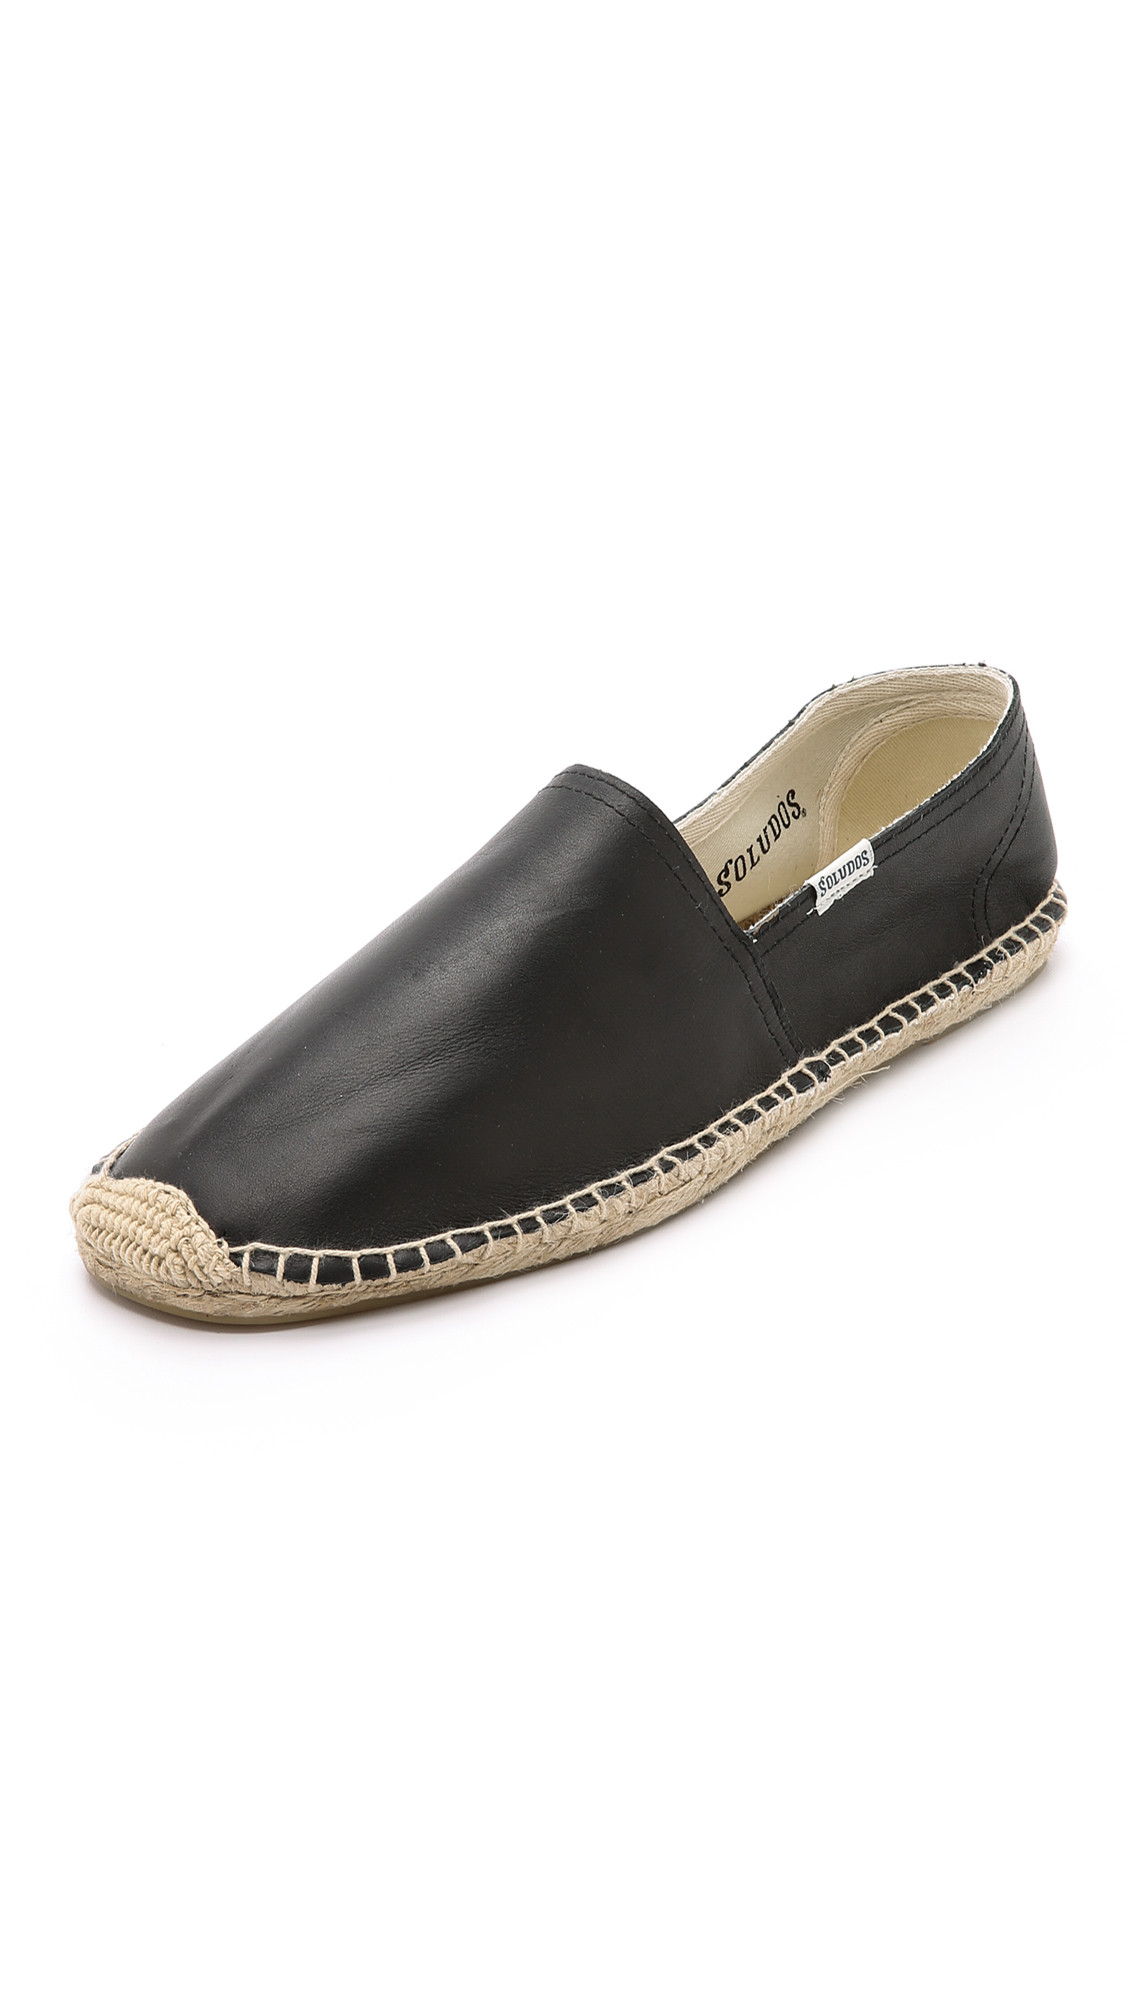 Traditional Men Shoes Indian Handmade Black Leather Espadrilles Jutti Flat AU 8 All these are handmade by skilled artisans in remote corners of India. Rich threads work are used in order to impart a royal touch on these Khussas.